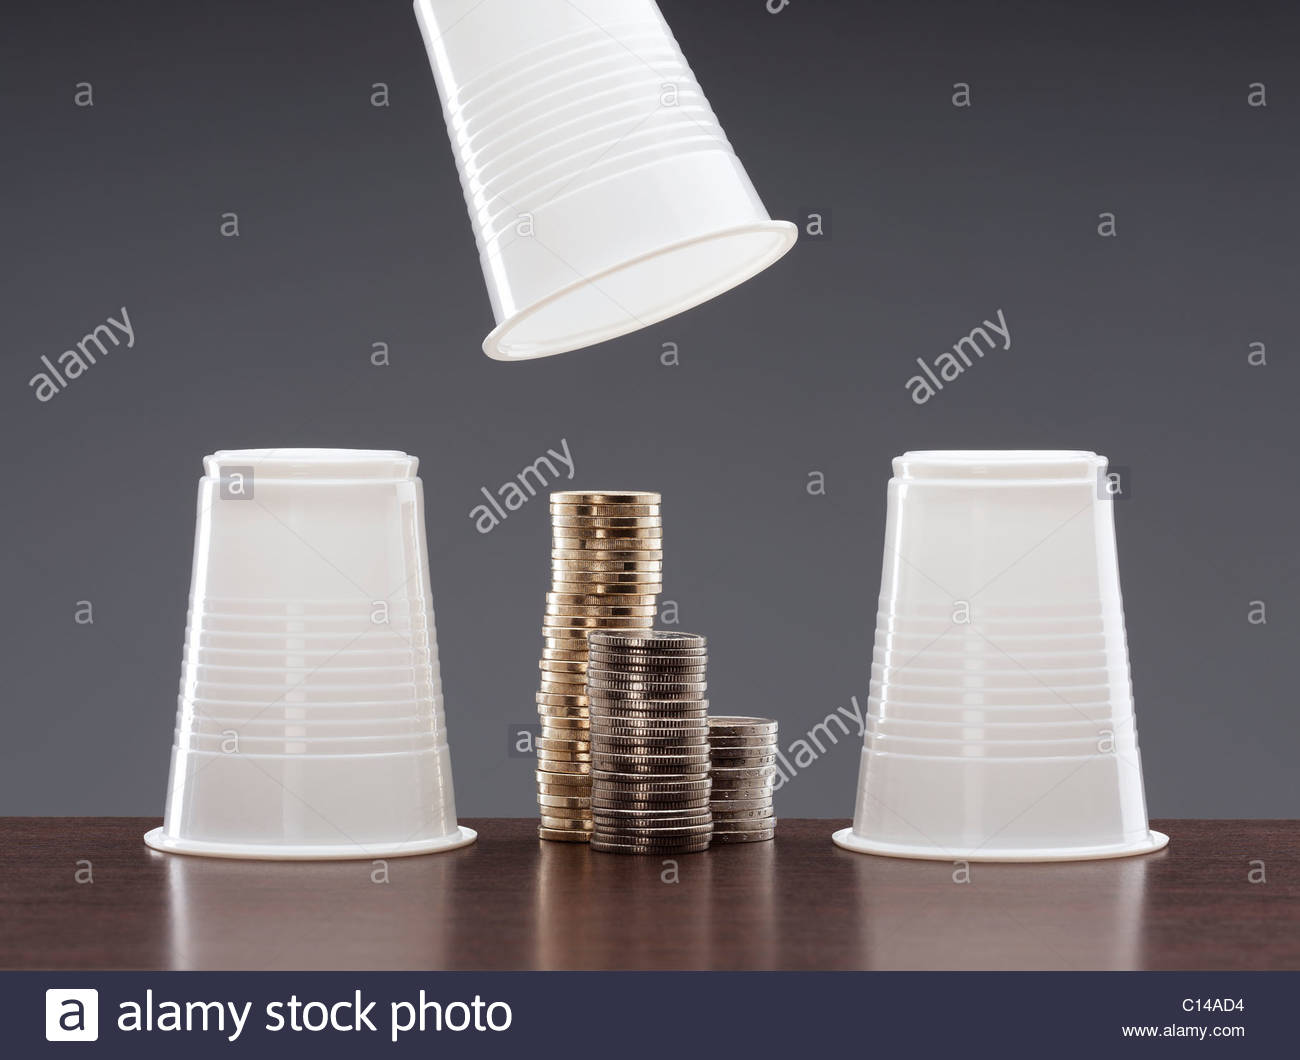 Cups and stacks of coins - Stock Image